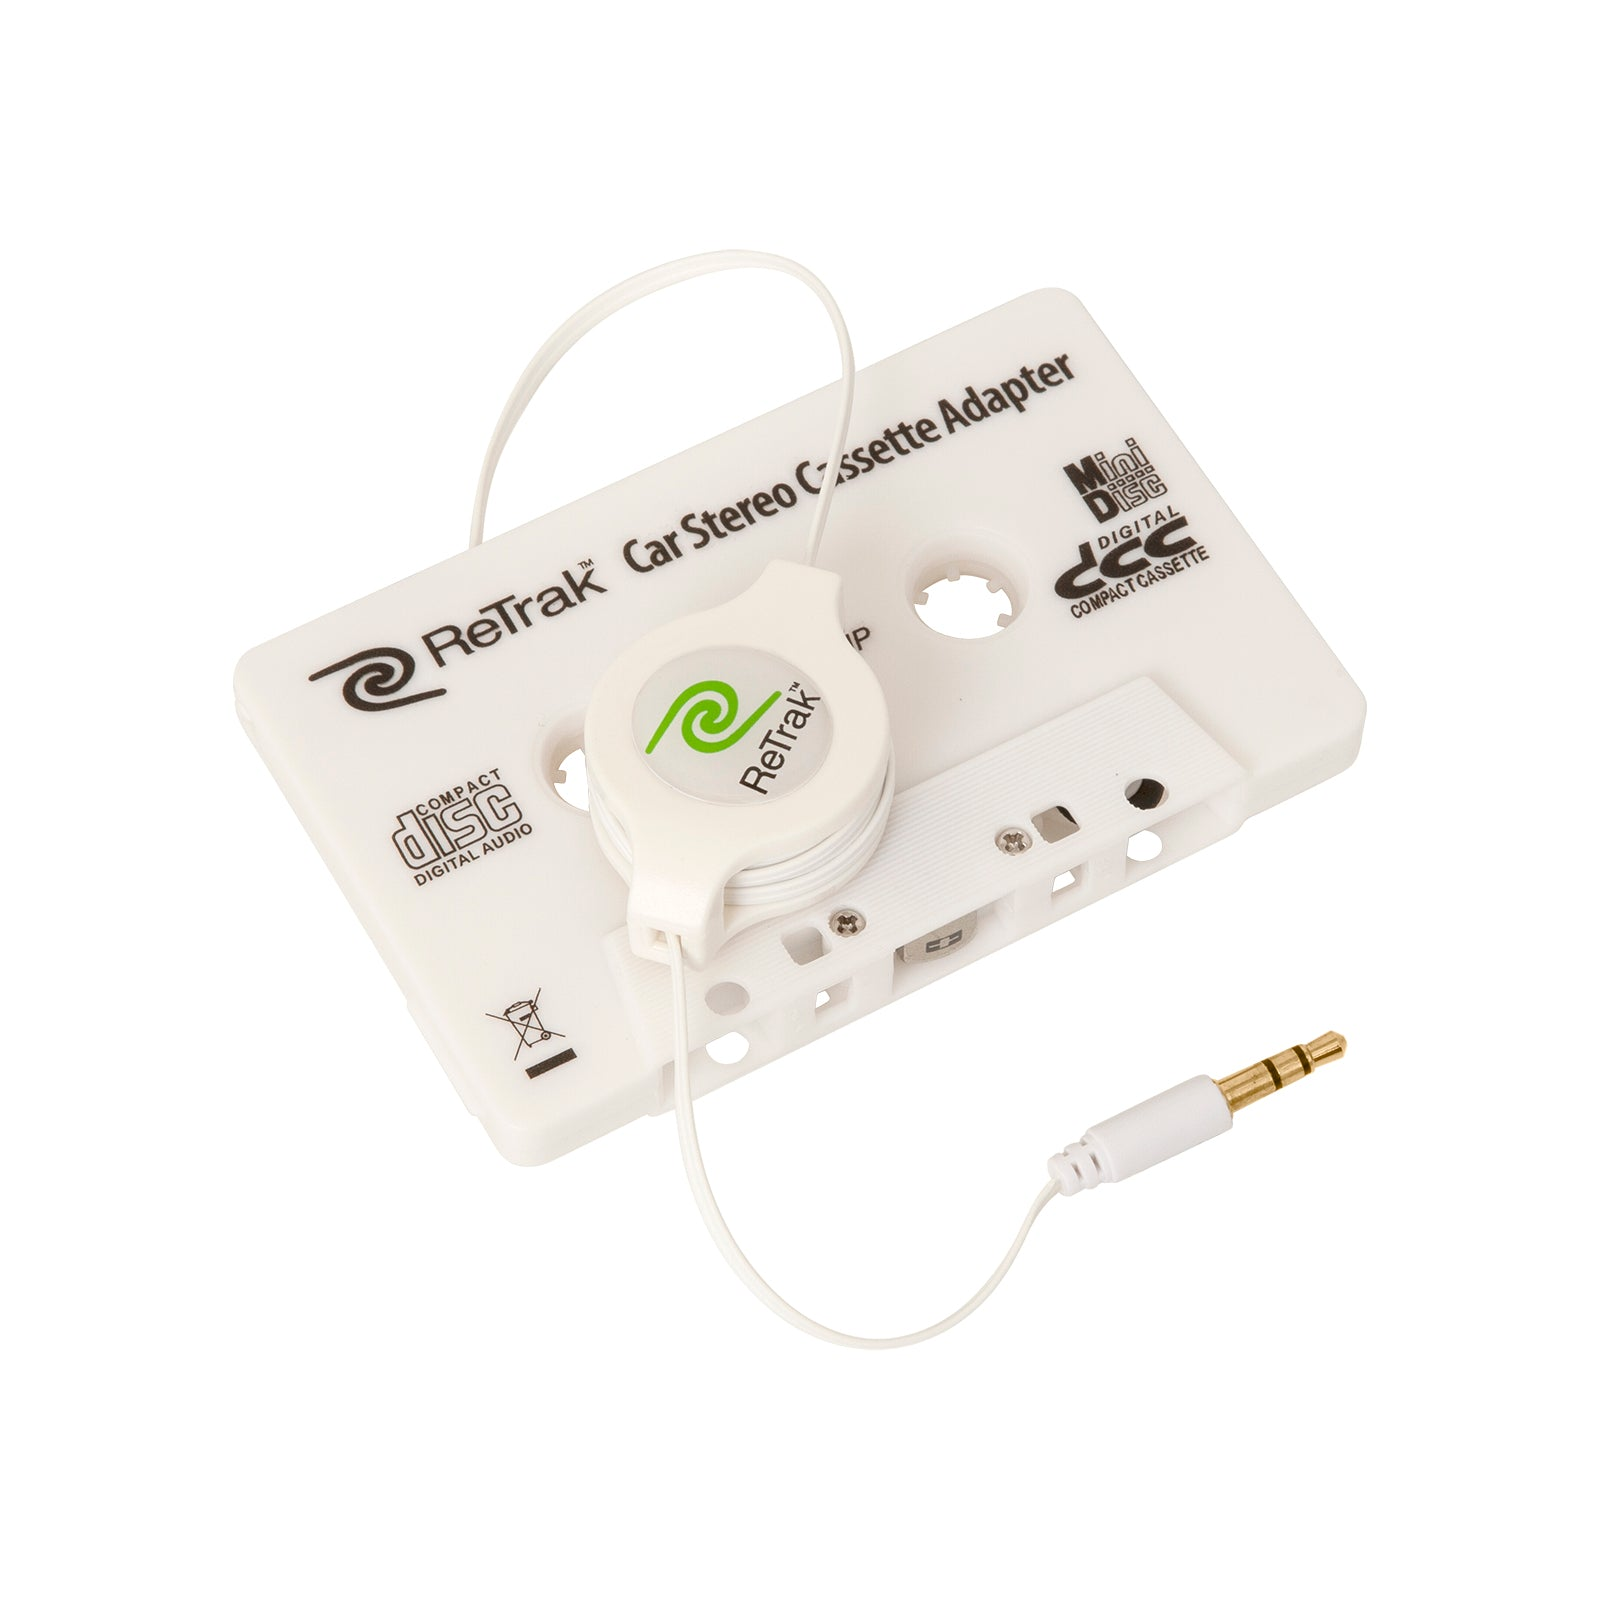 Stereo Cassette Adapter | Retractable Cassette Player Adapter | White